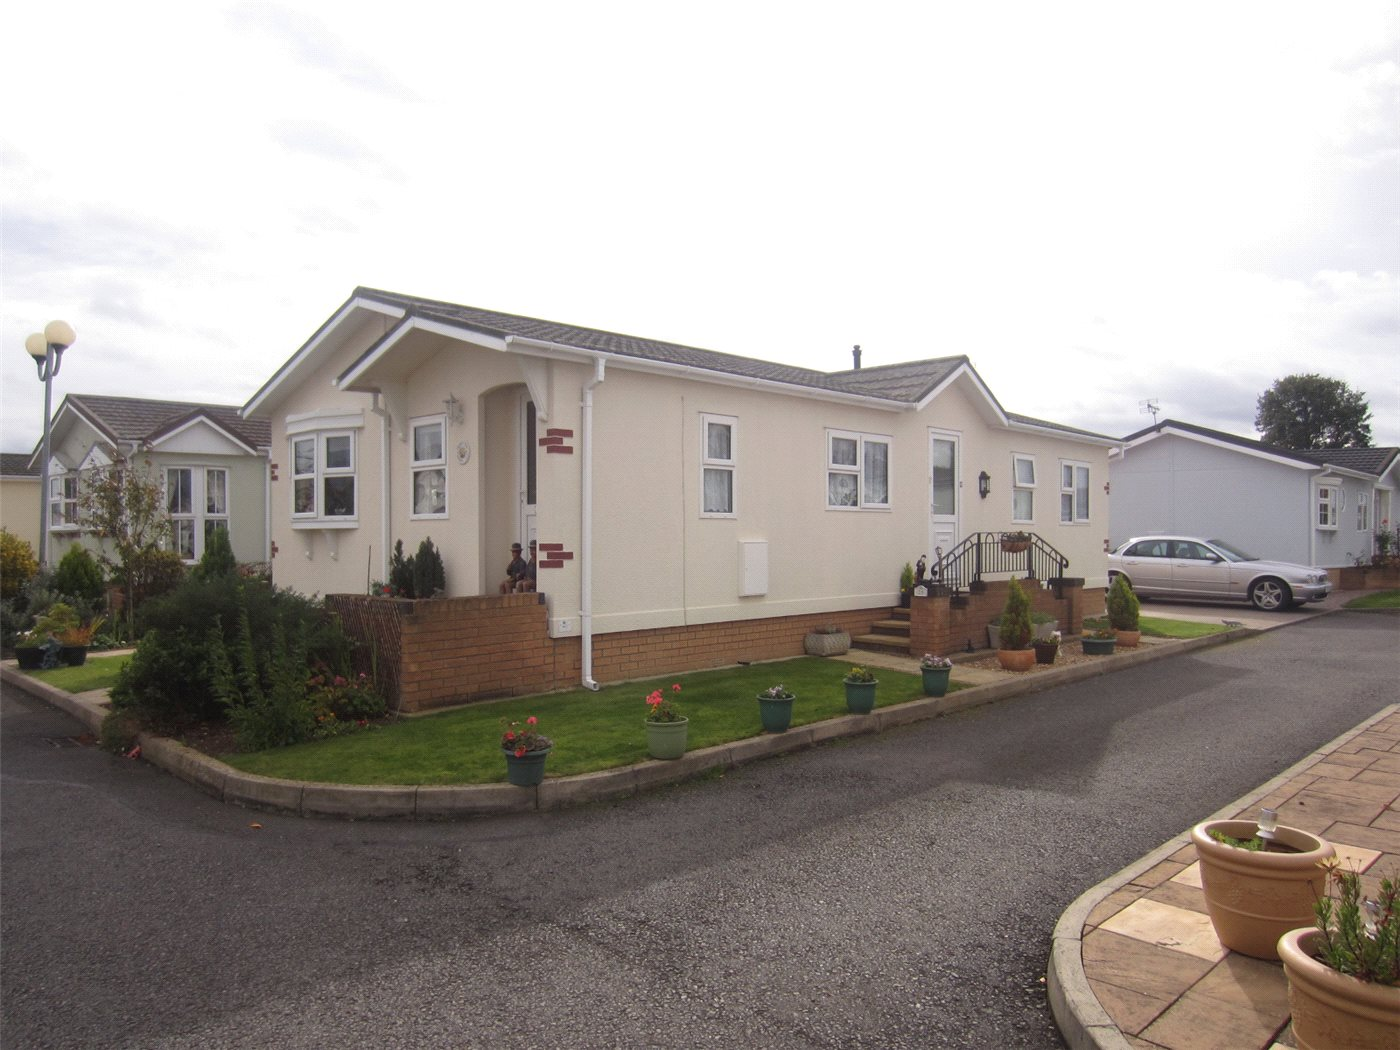 2 Bedrooms Retirement Property for sale in Meadow View, Allington Gardens, Allington, Grantham, NG32